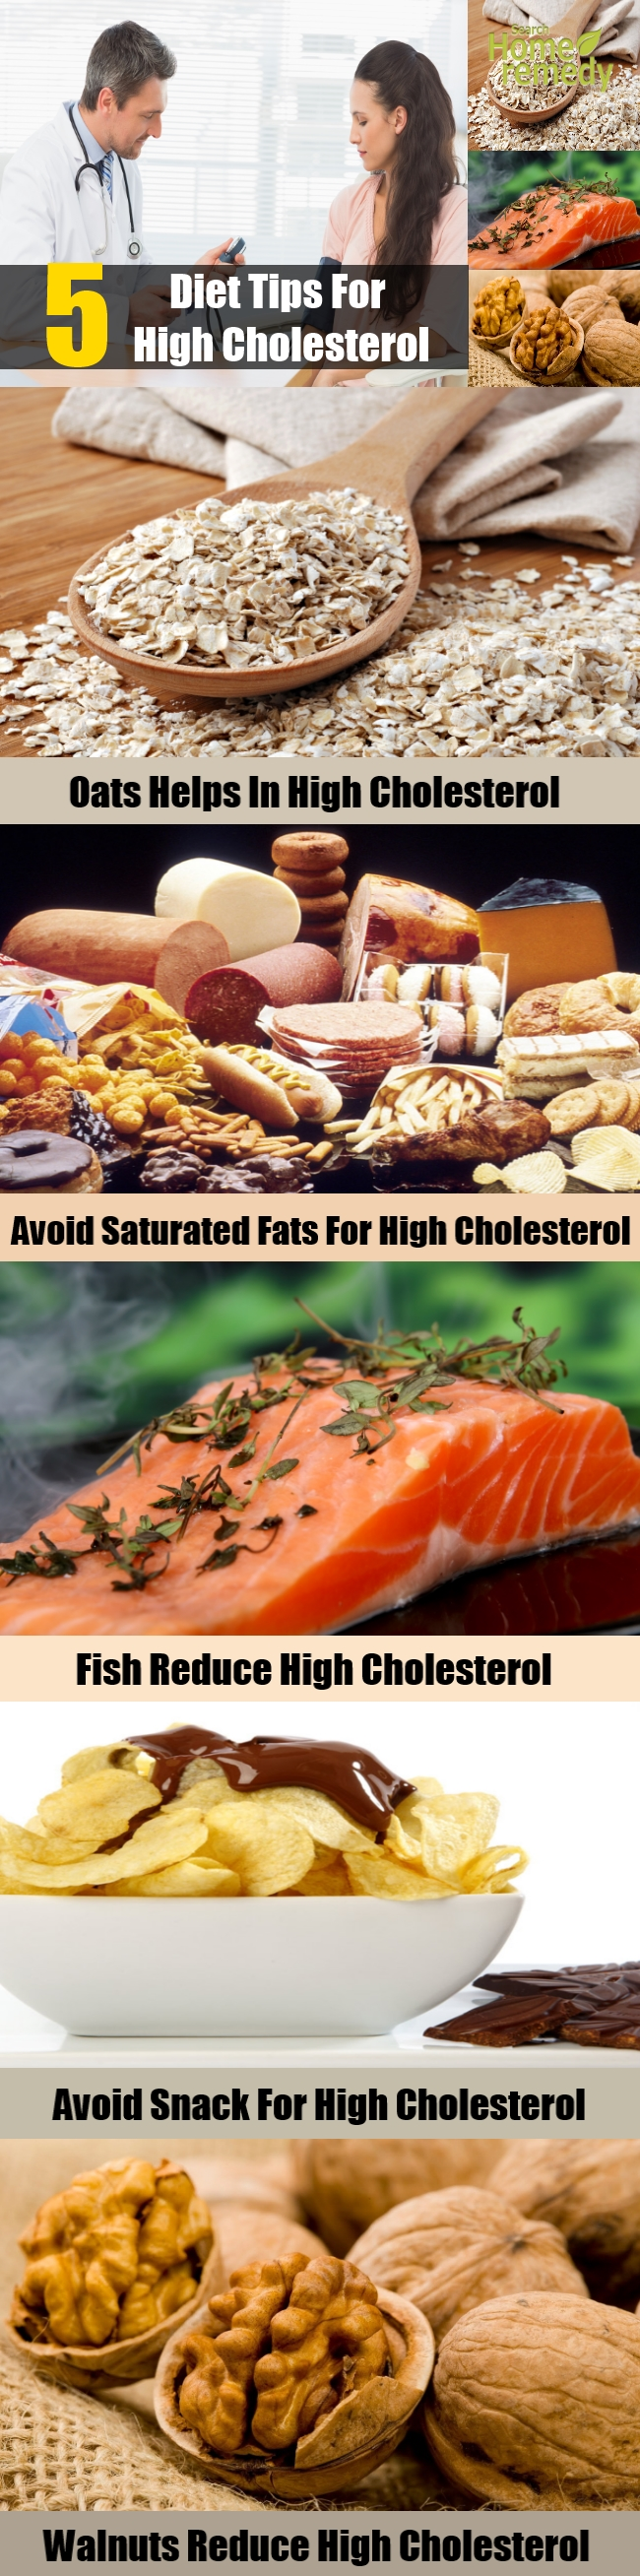 5 Diet Tips For High Cholesterol